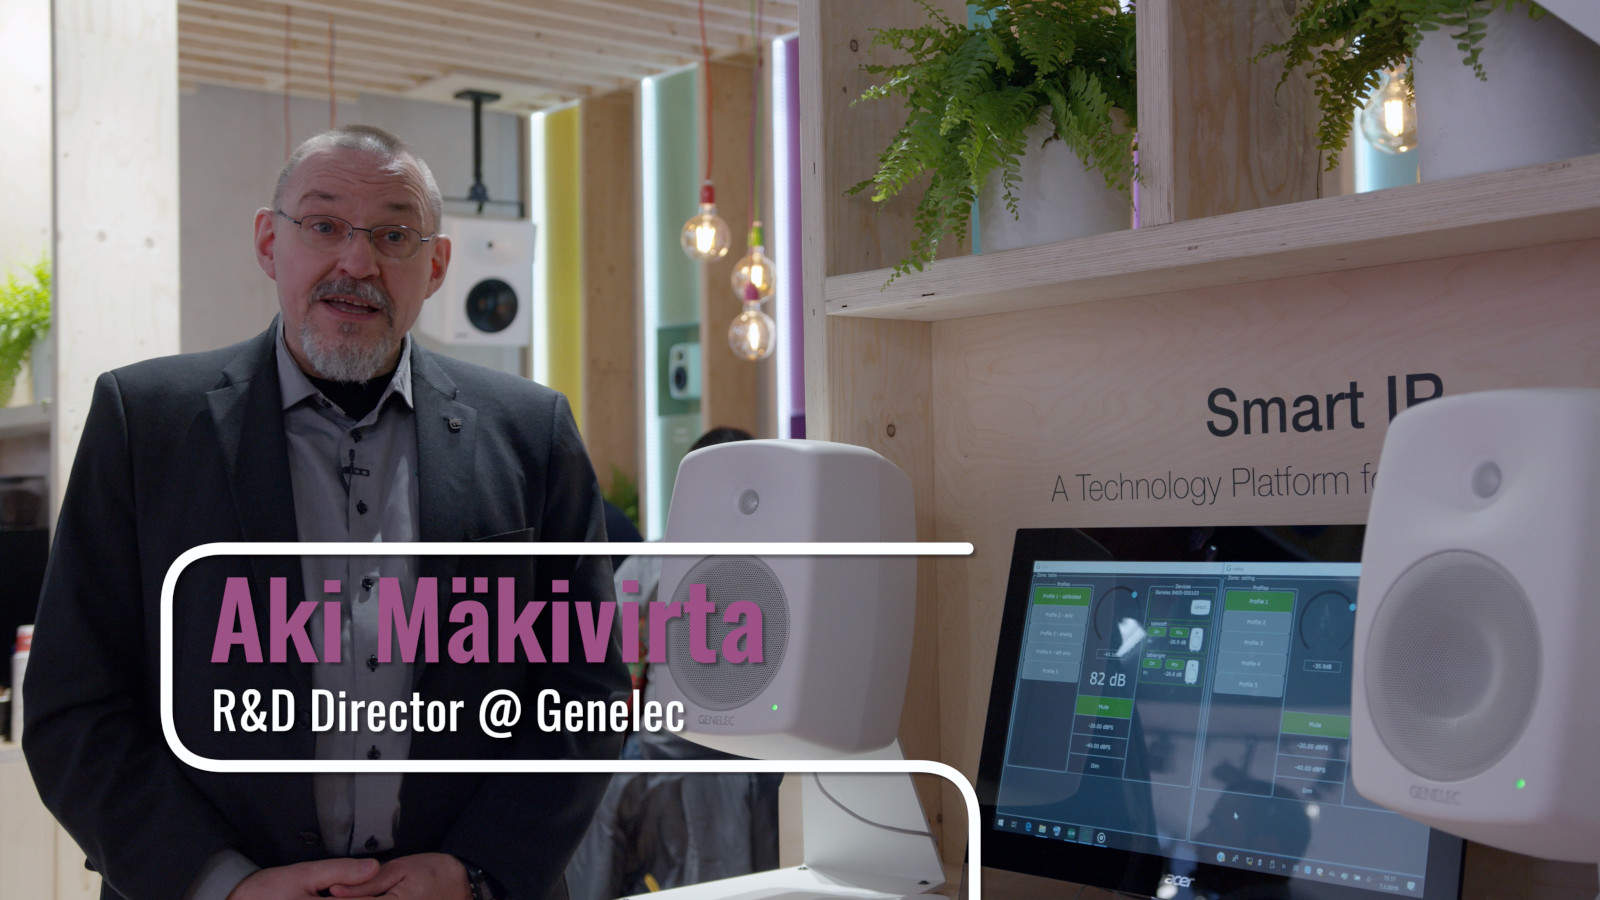 aki-makivirta-explains-genelec-smart-ip